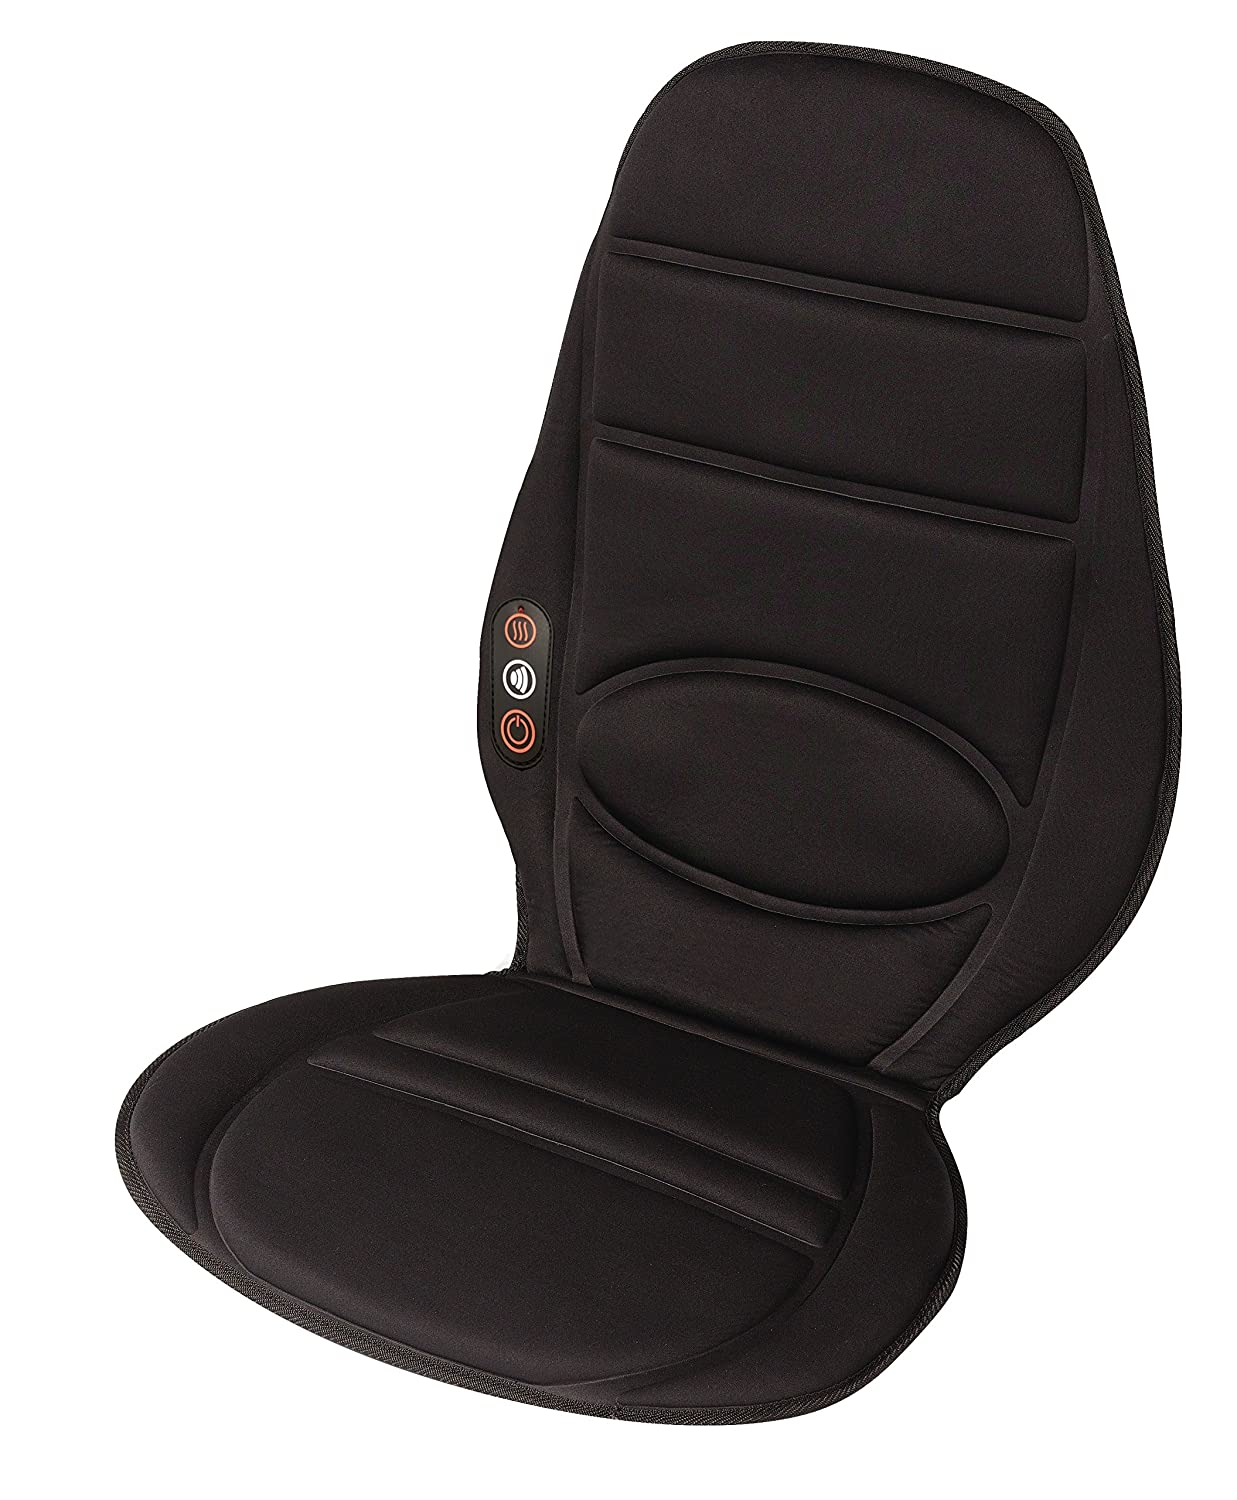 t zone massage chair manual